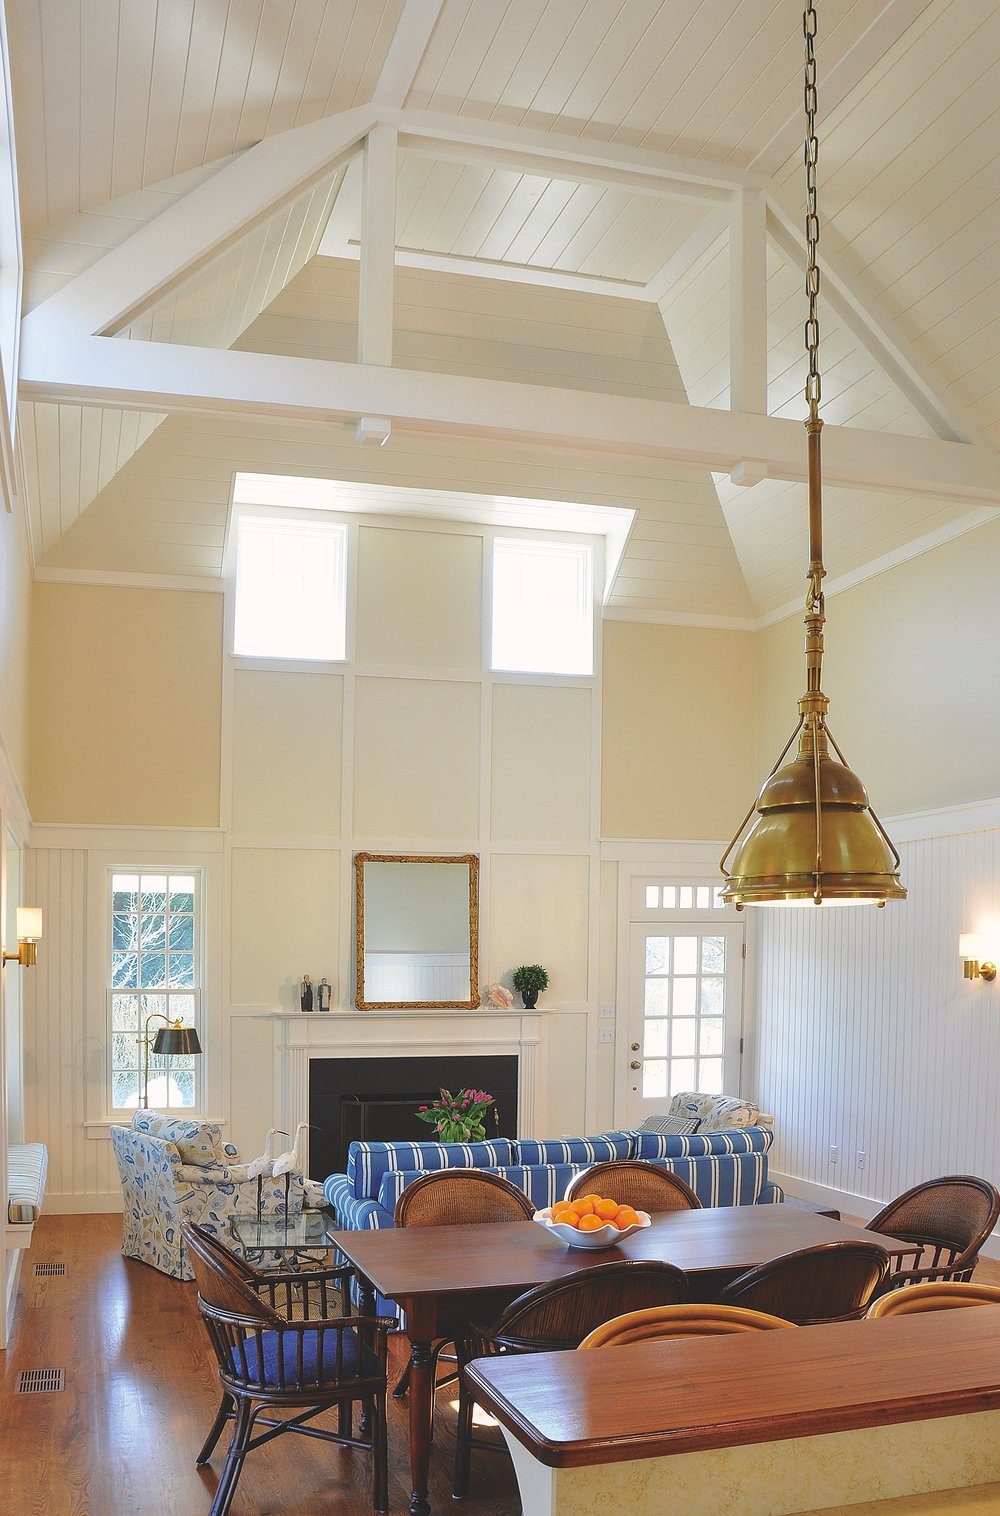 Modern_Farmhouse_Vaulted_Ceilings_Exposed_Beams_Brass_Chandelier_Pendant_Light_Lving_Room.jpg